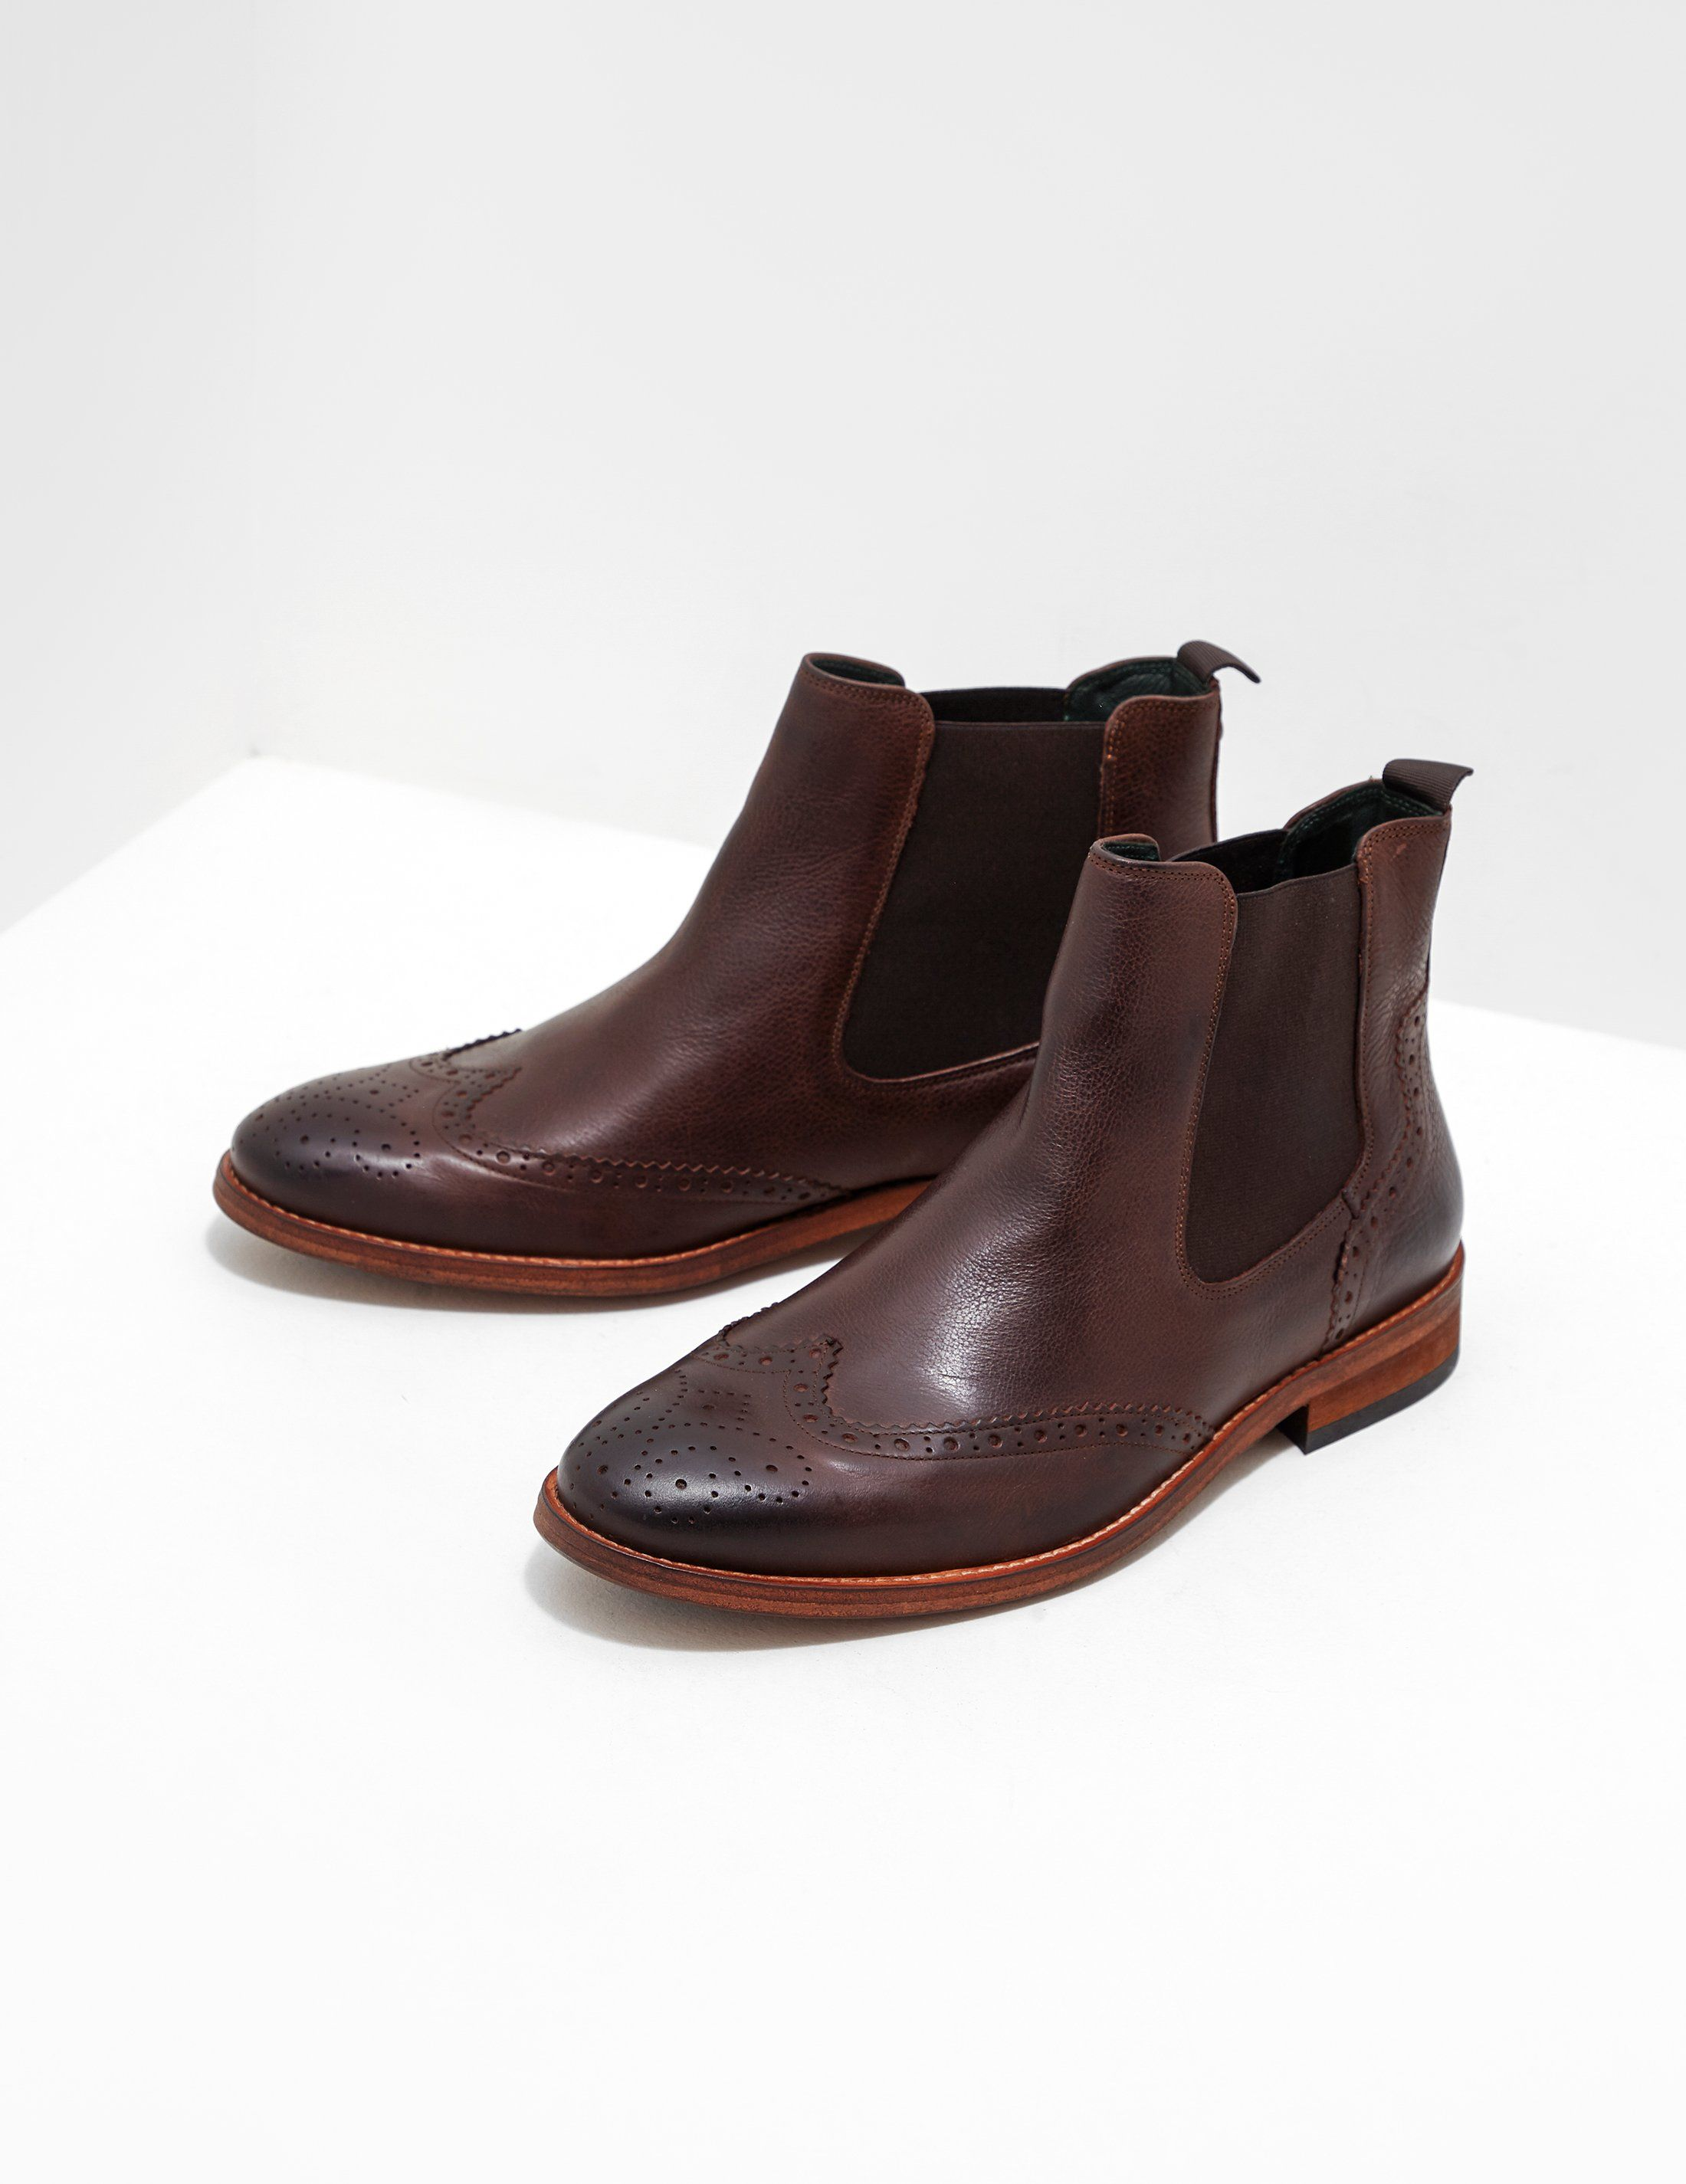 Barbour Raunds Chelsea Boots